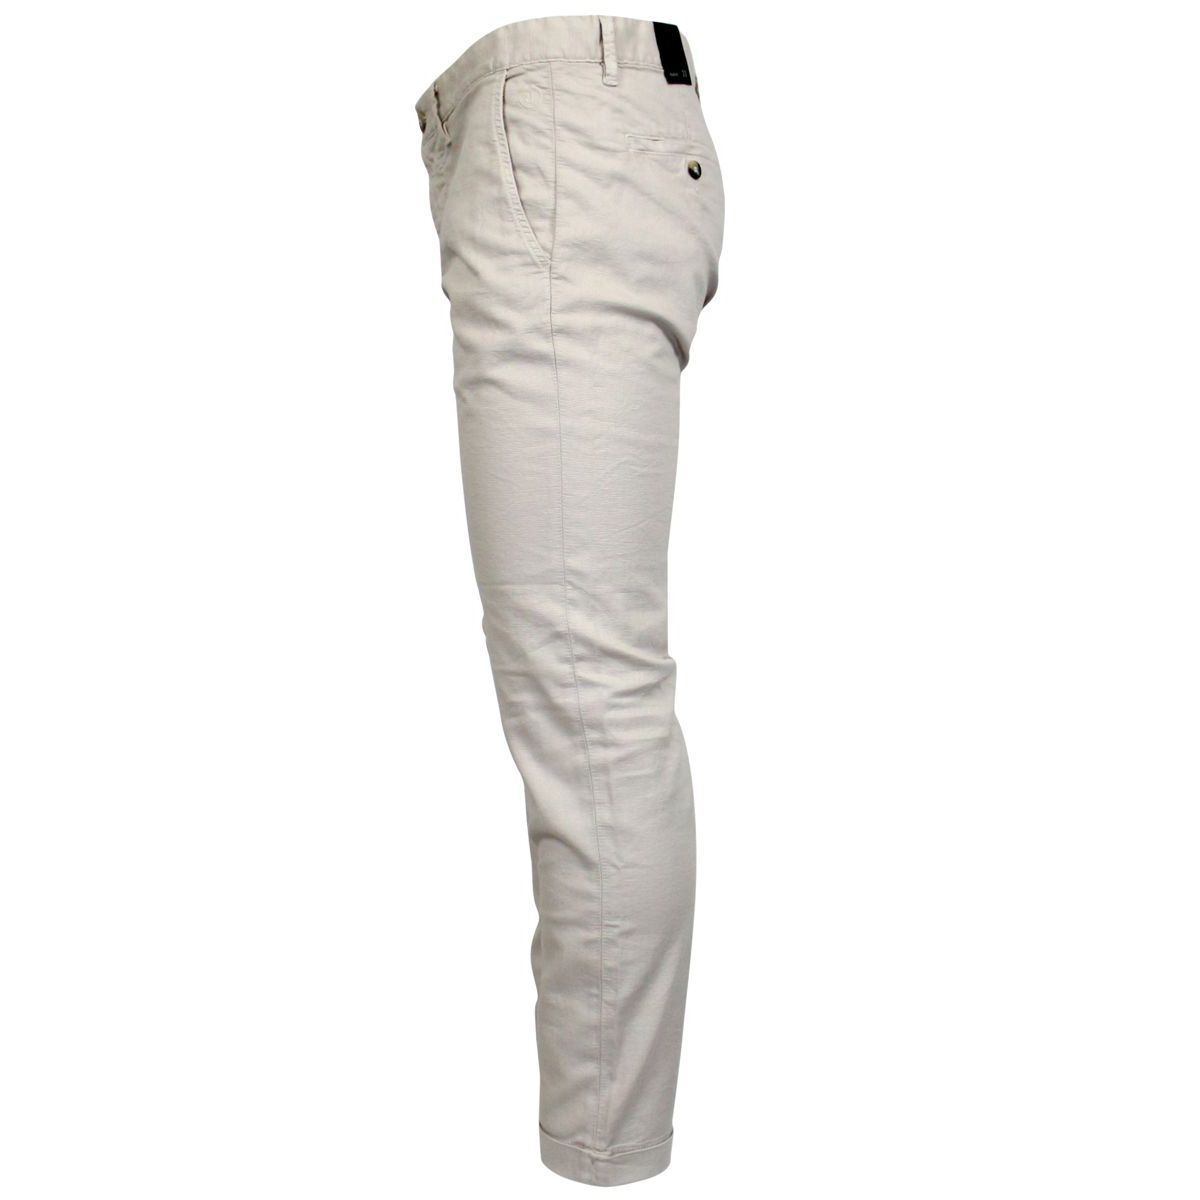 Stretch trousers with america pocket Beige Jeckerson